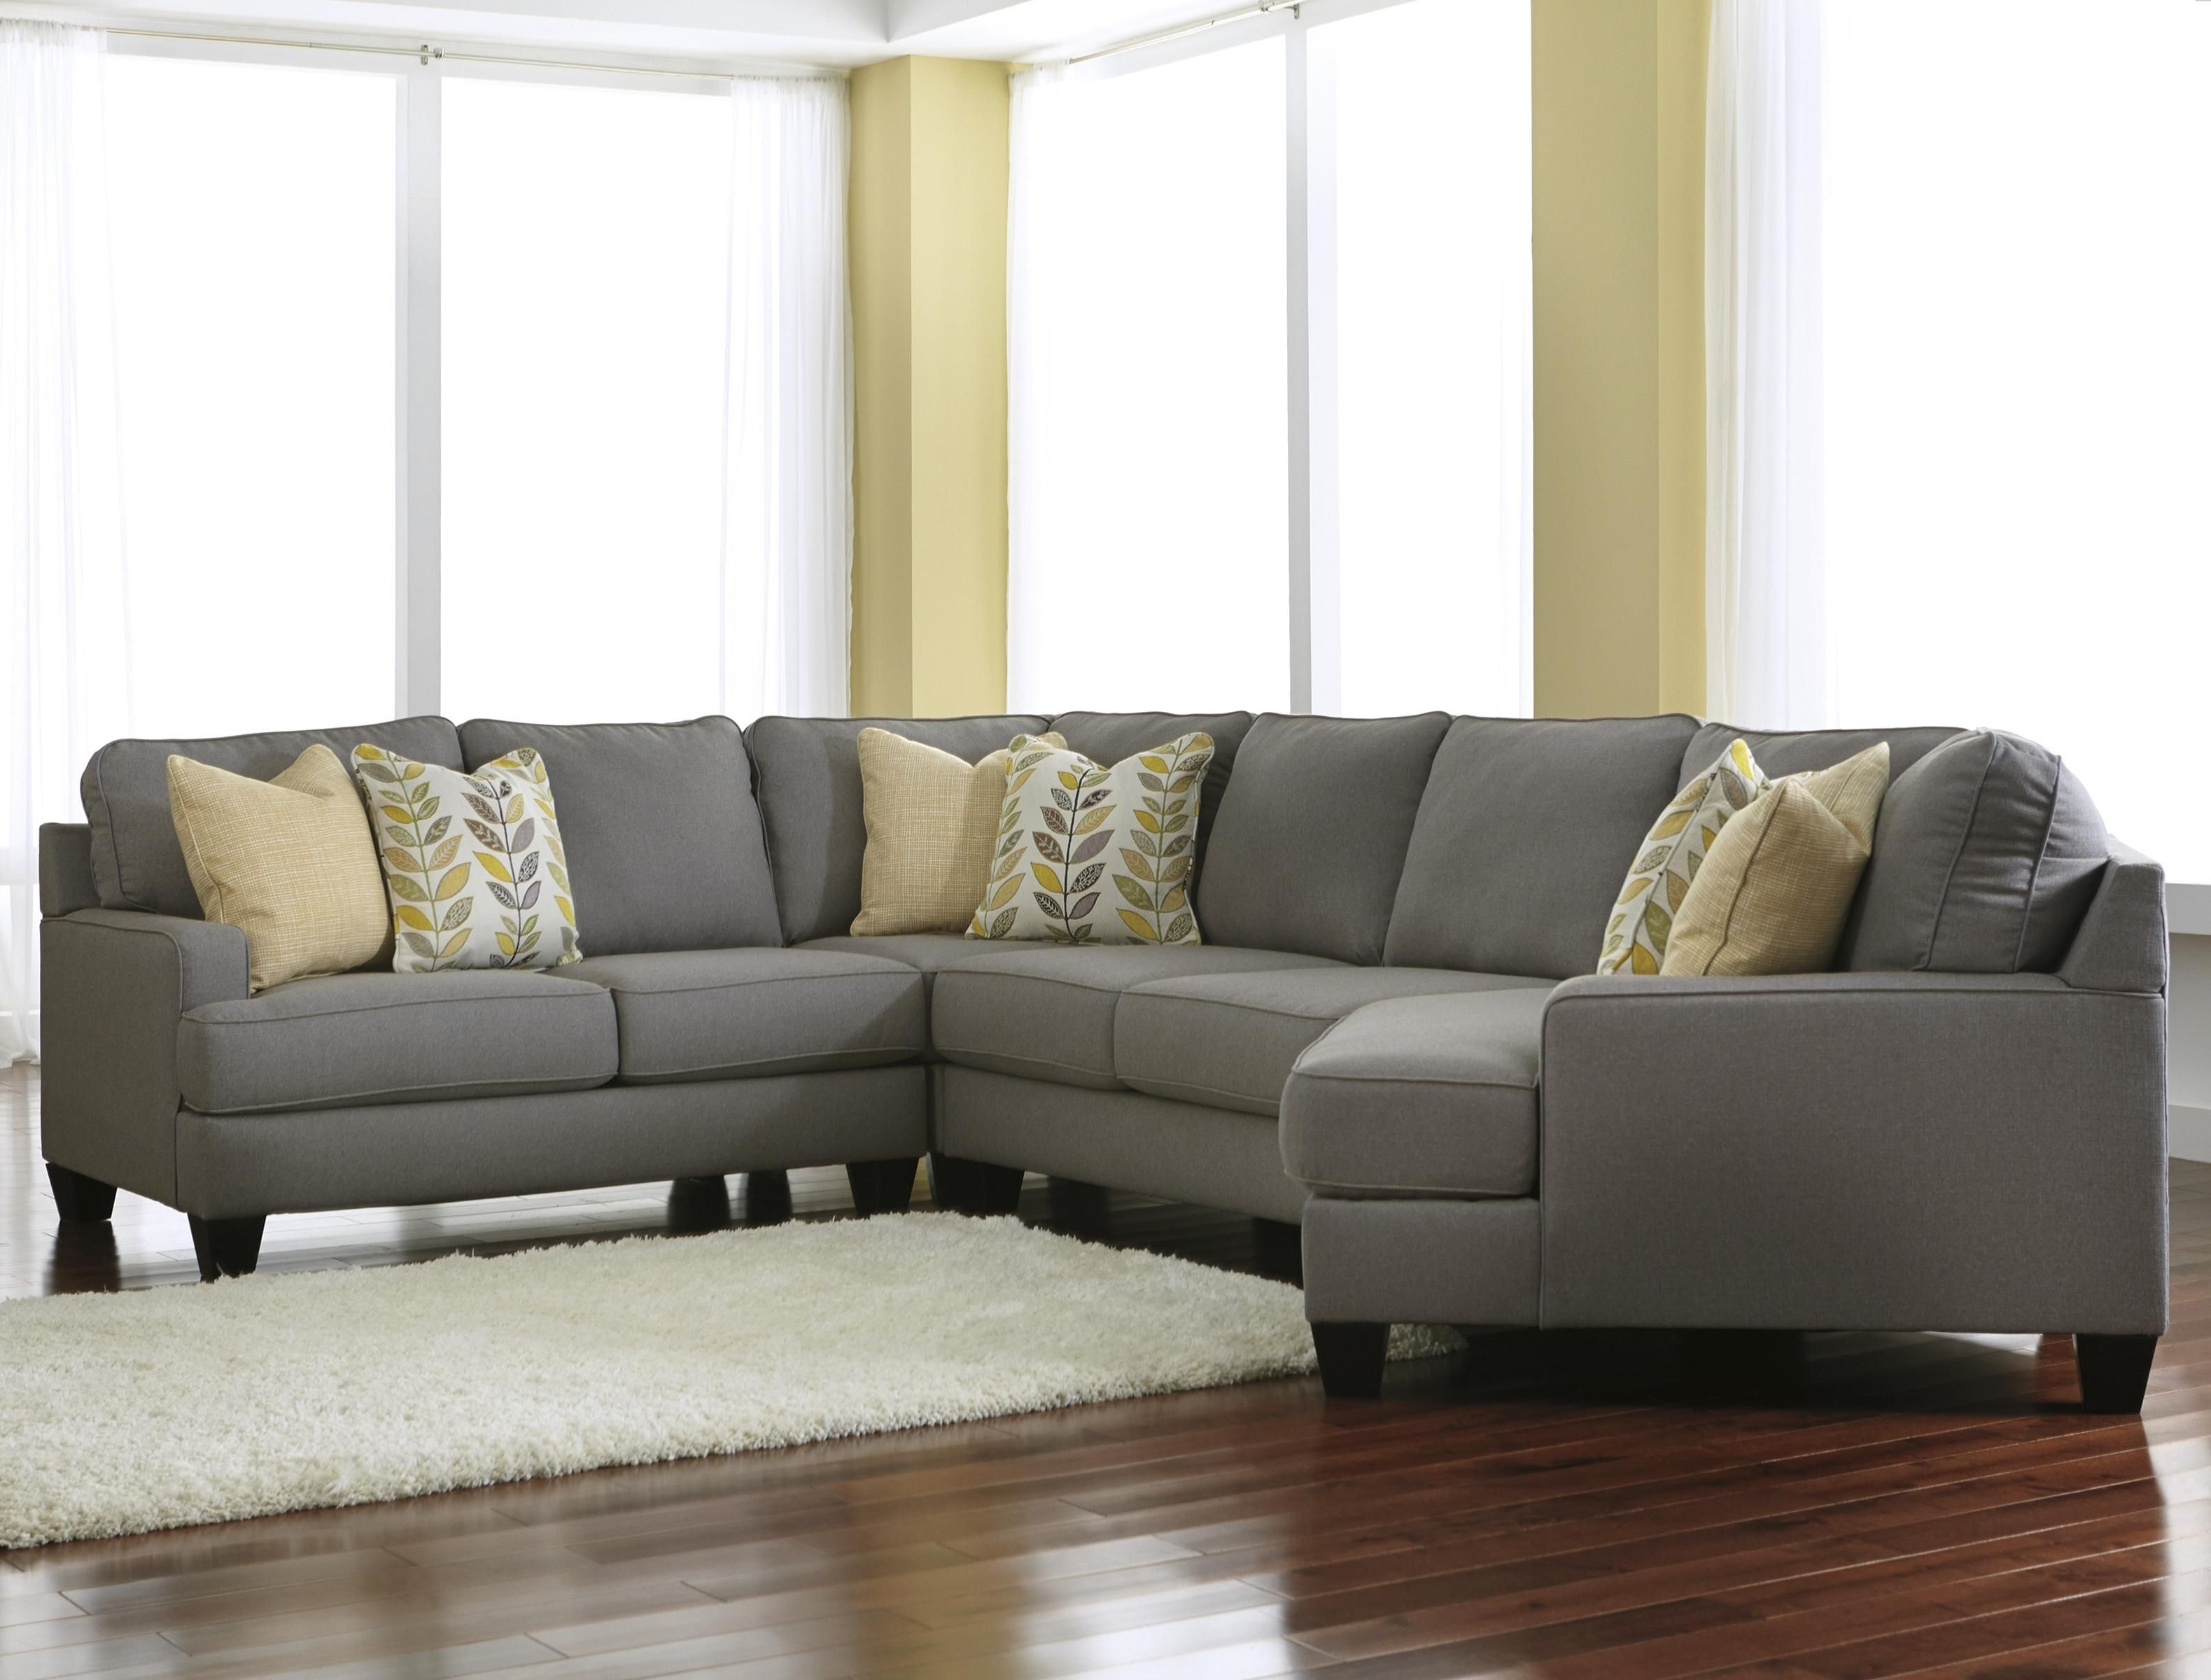 Popular Chamberly – Alloy Modern 4 Piece Sectional Sofa With Left Cuddler With Regard To Johnson City Tn Sectional Sofas (View 8 of 15)